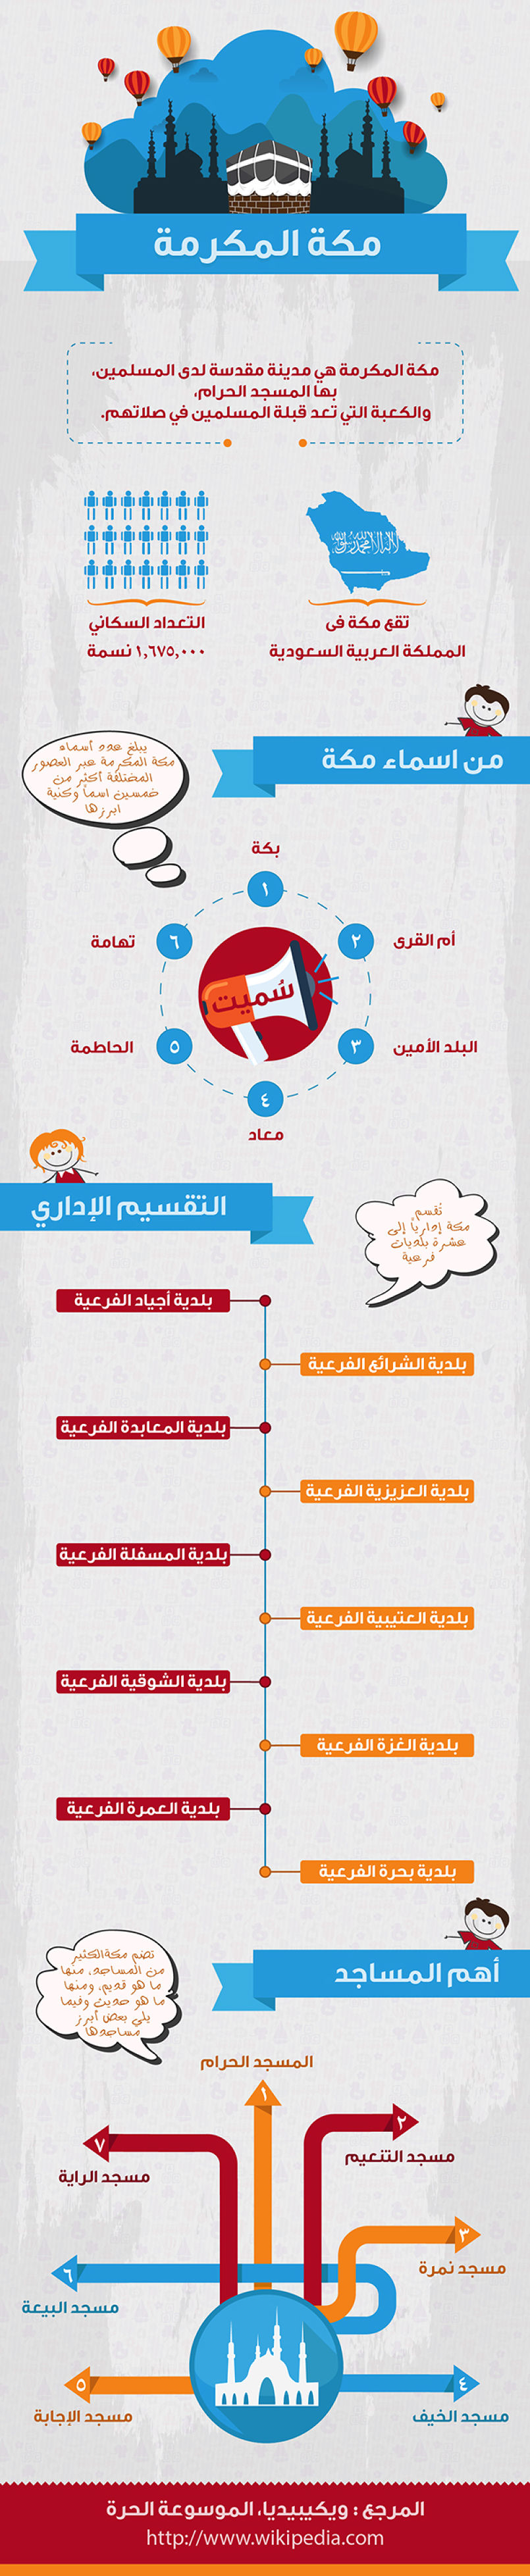 About Mekkah infographic For Childs